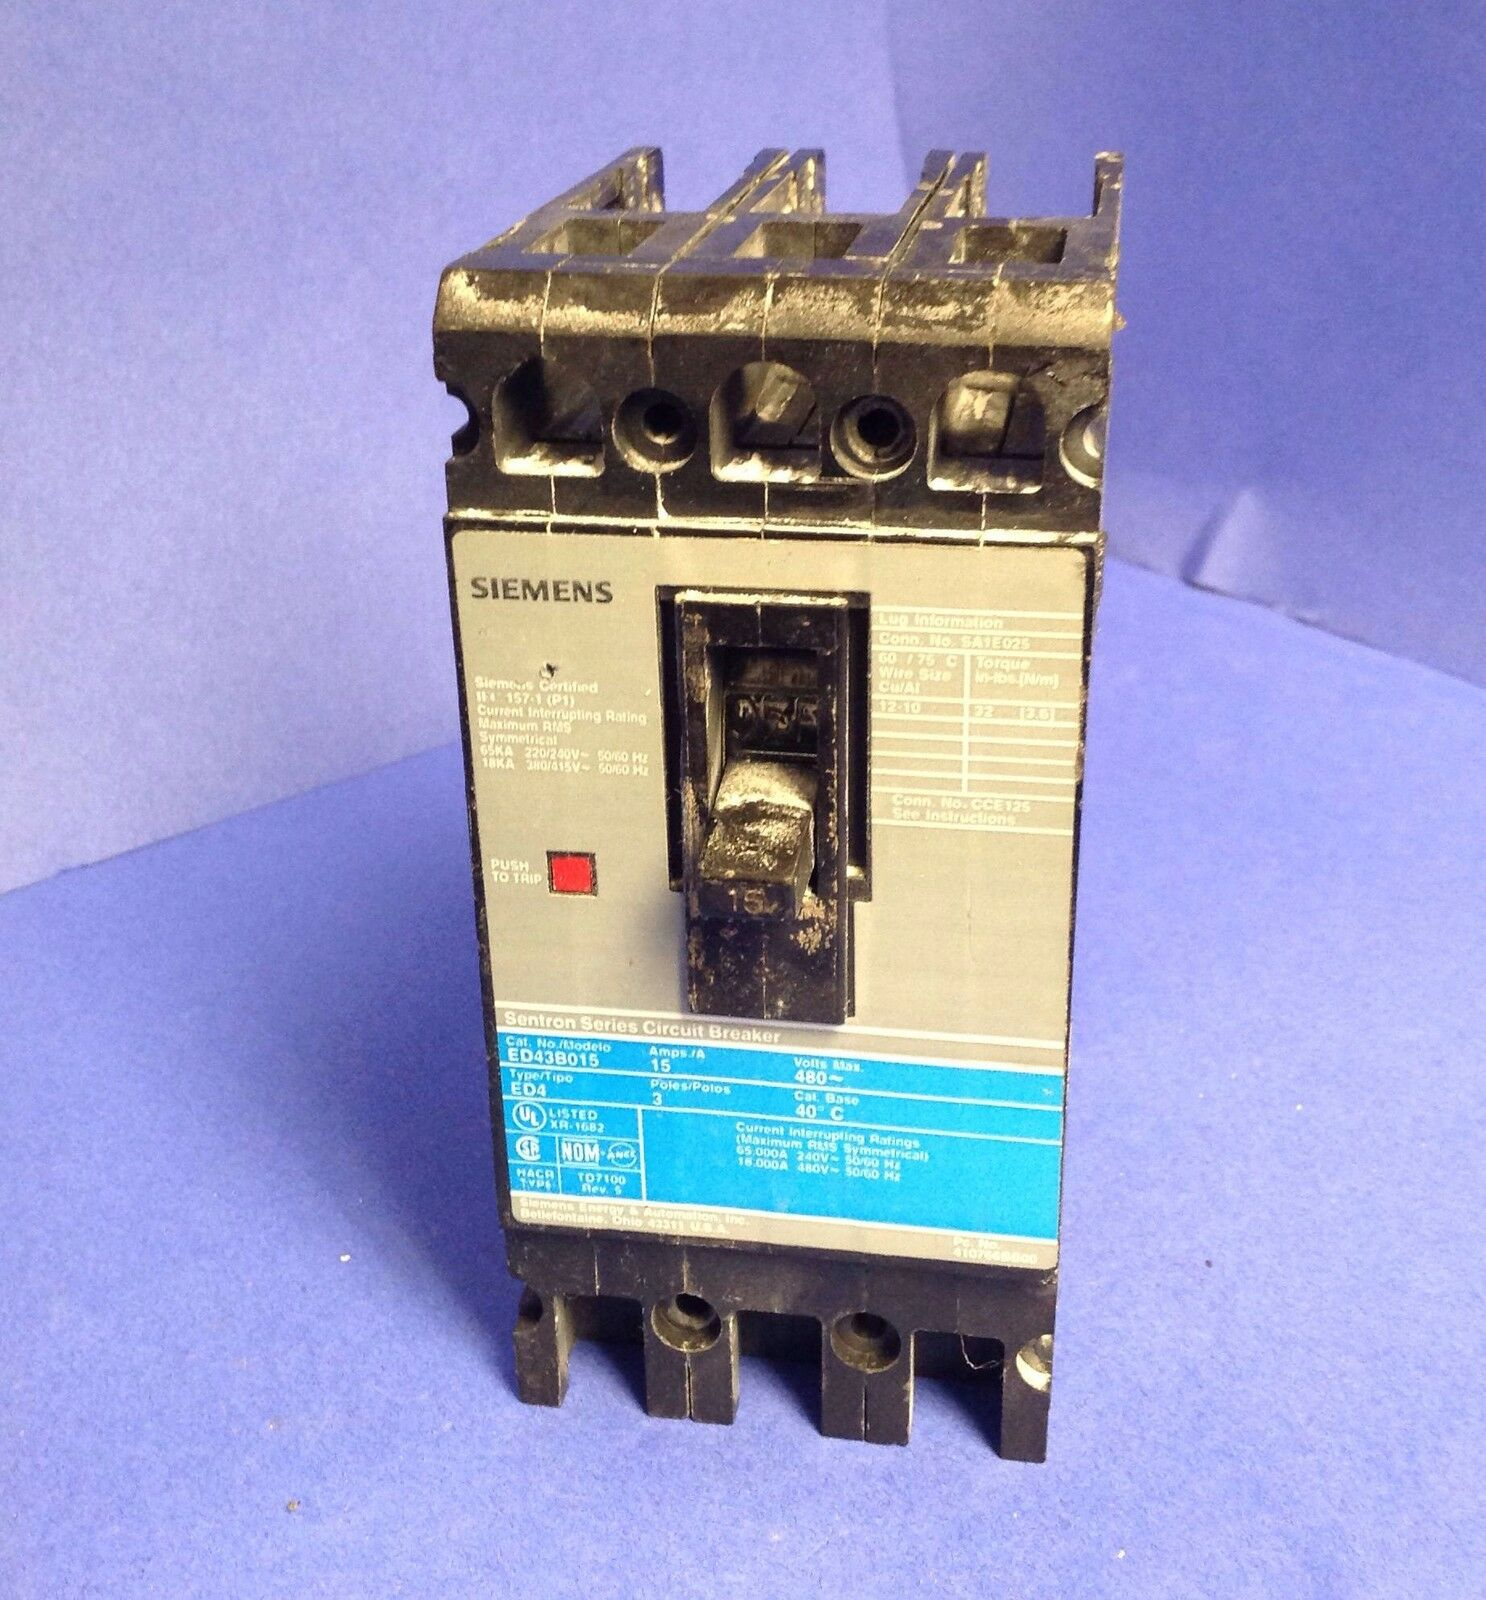 ITE SIEMENS ED4 ED43B015 3 POLE 480V 15 AMP BLUE GRAY LABEL CIRCUIT BREAKER UR